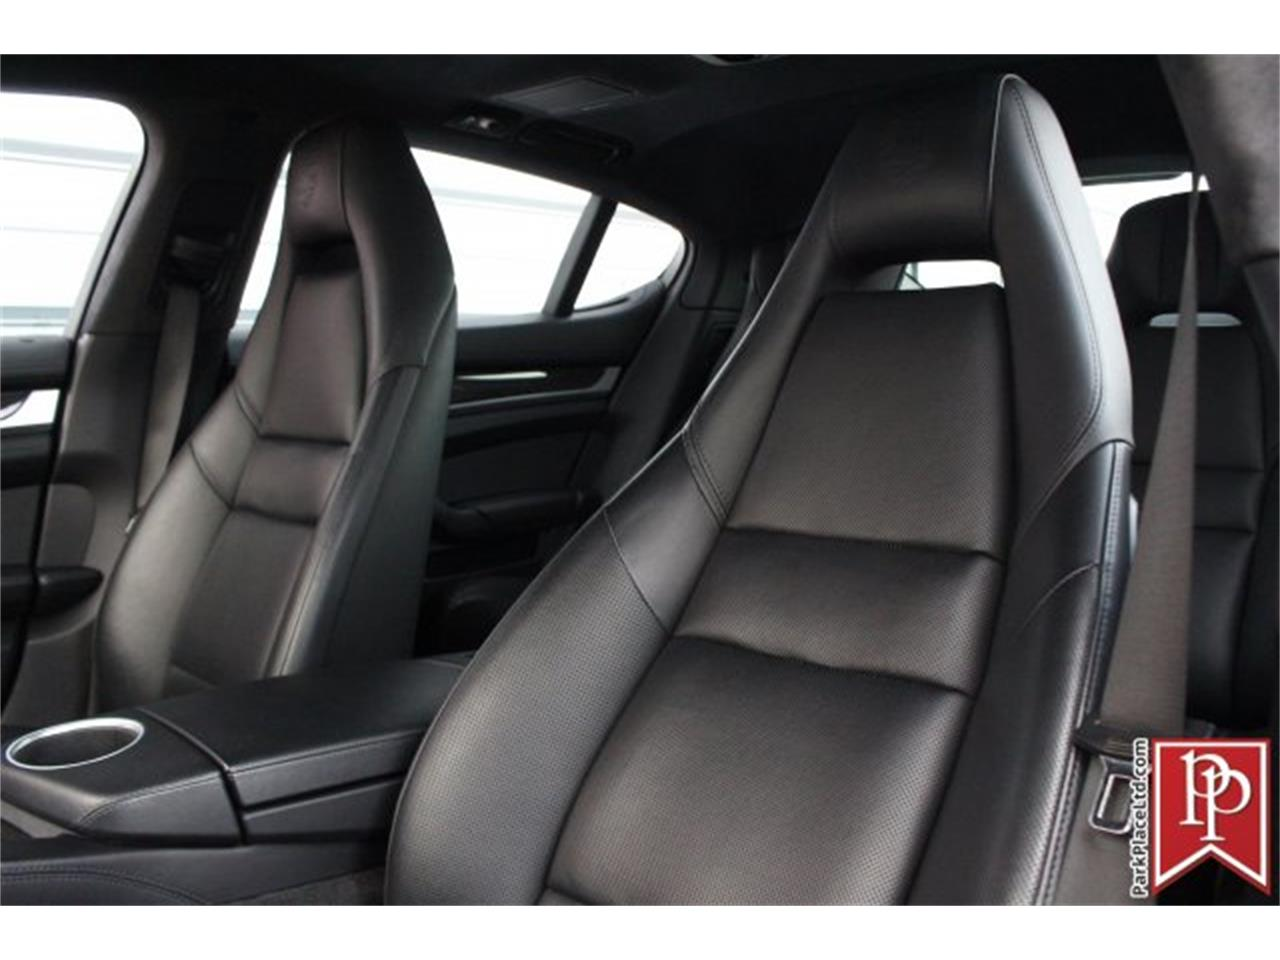 2014 Porsche Panamera for sale in Bellevue, WA – photo 8